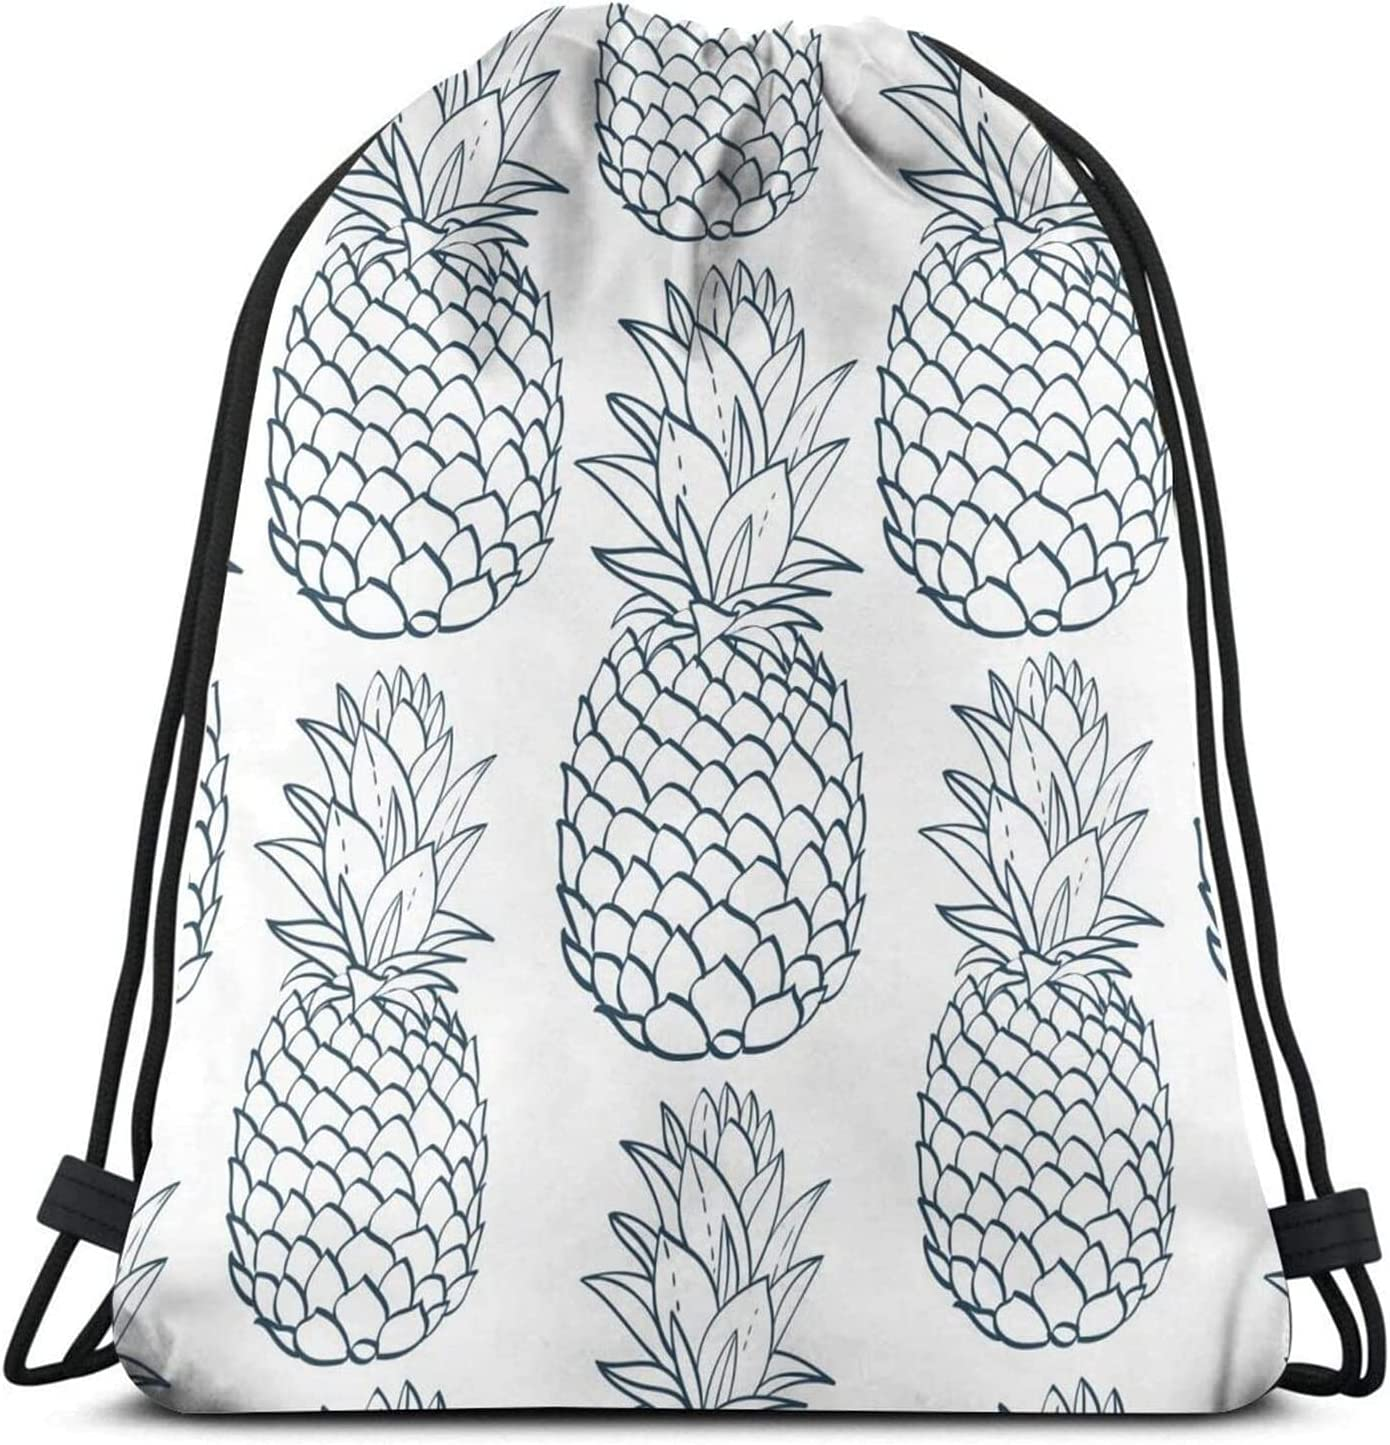 Pineapple Blue Pattern Drawstring Bags Gym Max 55% OFF Backpack Sack Sport Great interest S